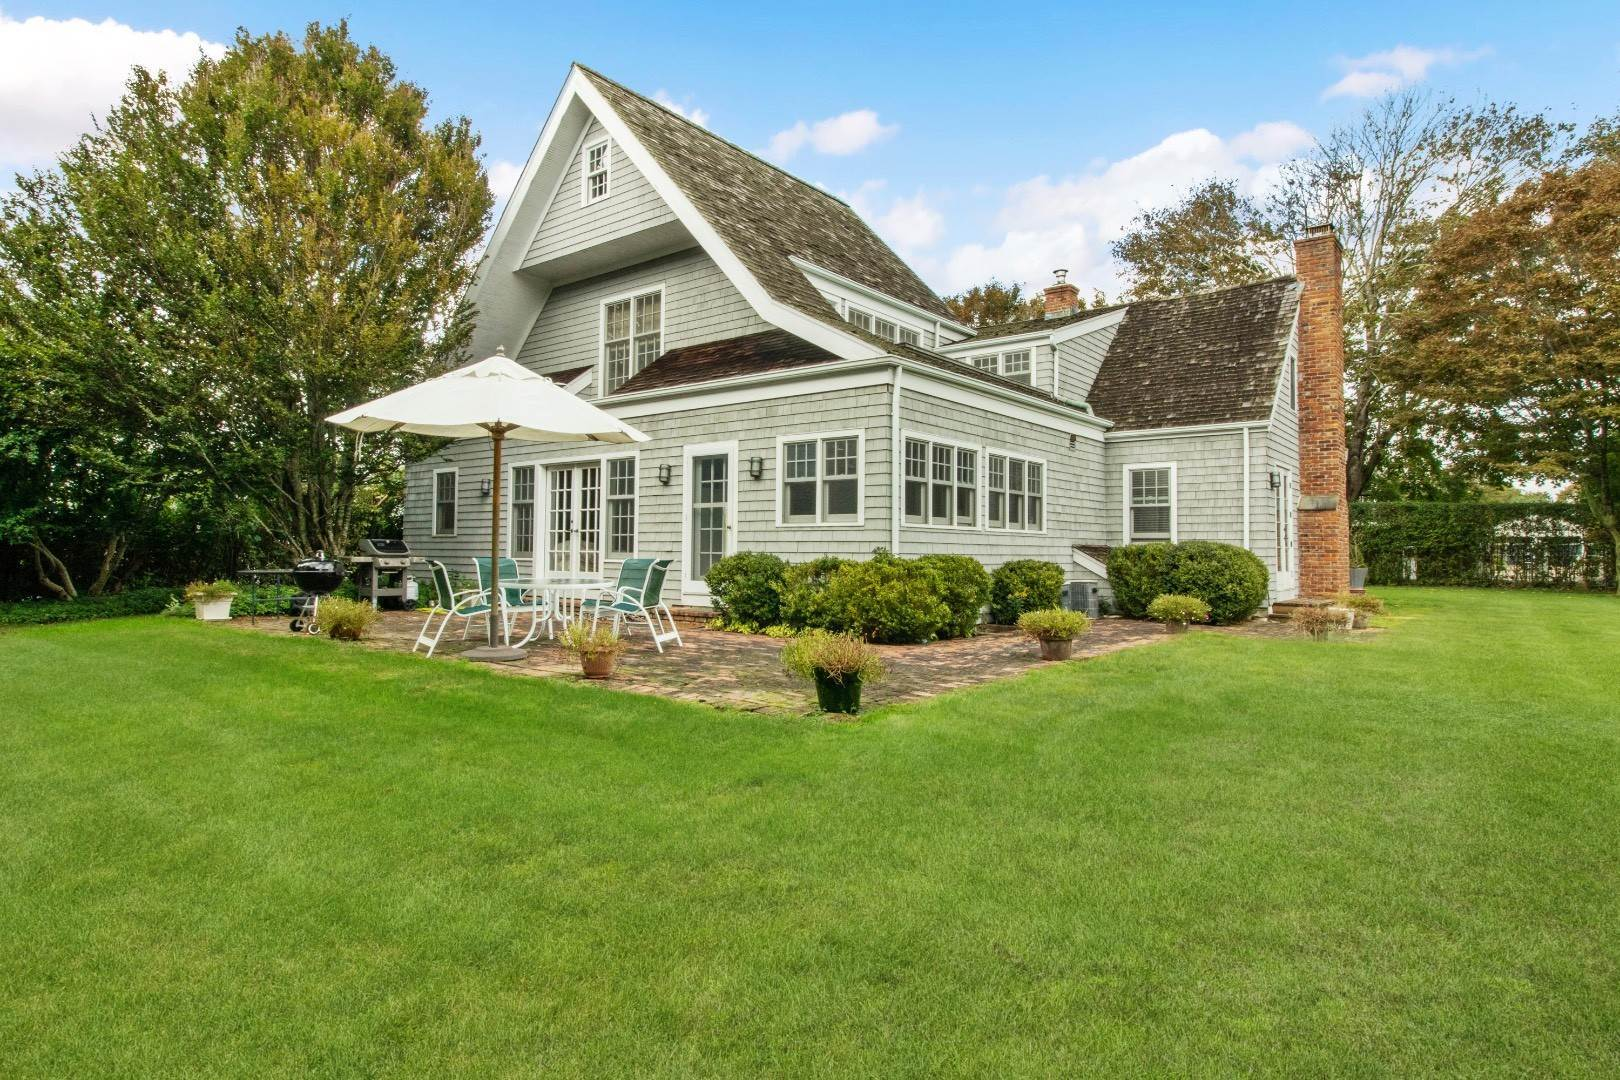 Single Family Home at South Of The Highway In Southampton 64 South Hill Street, Southampton, NY 11968